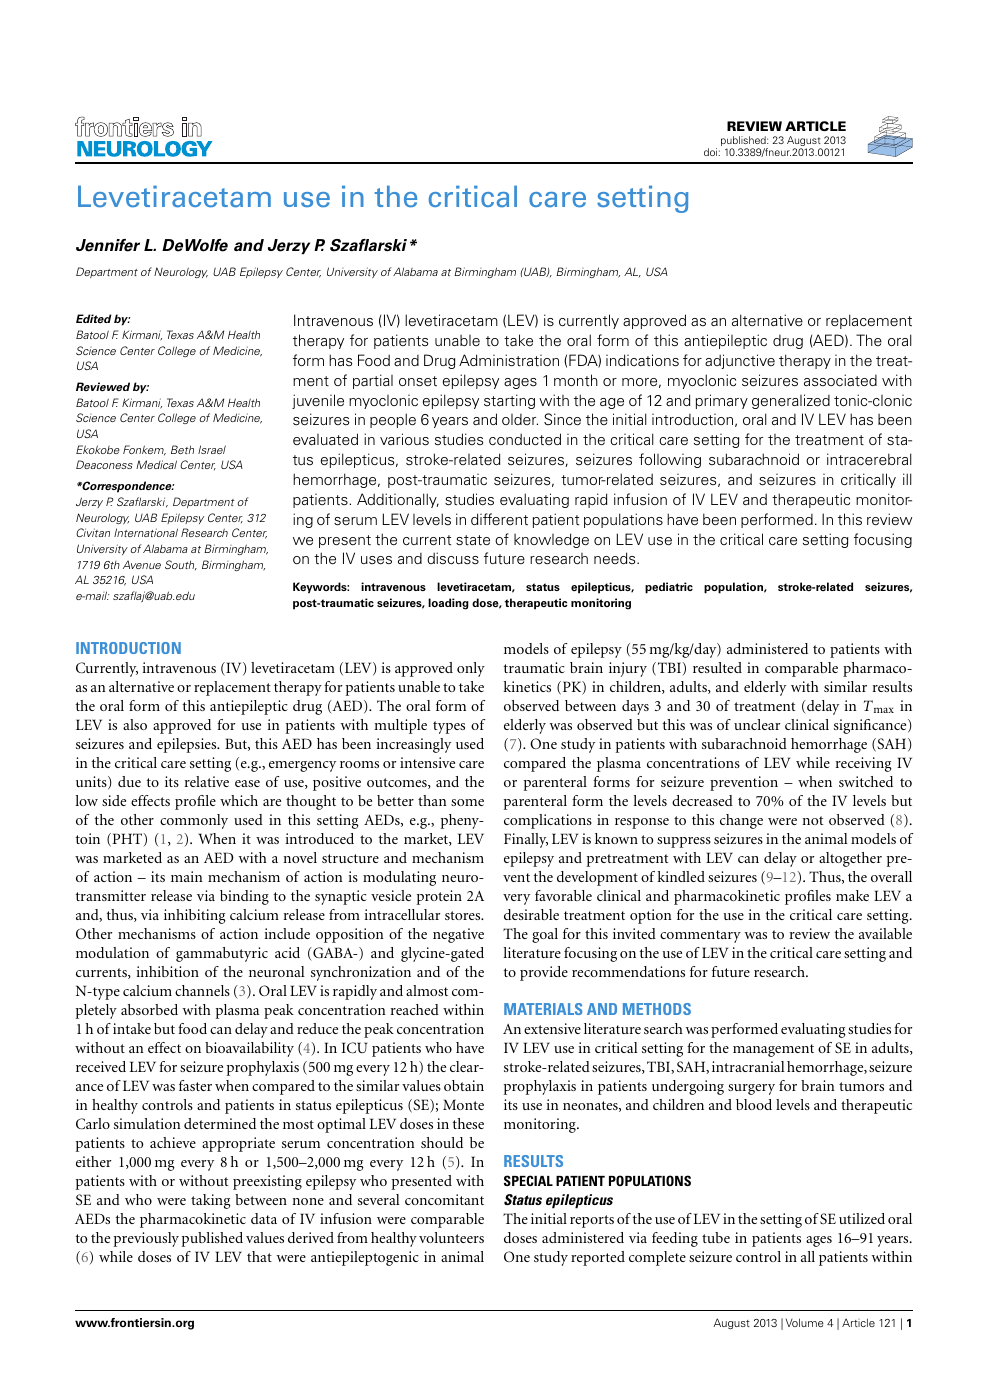 Levetiracetam Use in the Critical Care Setting – topic of research